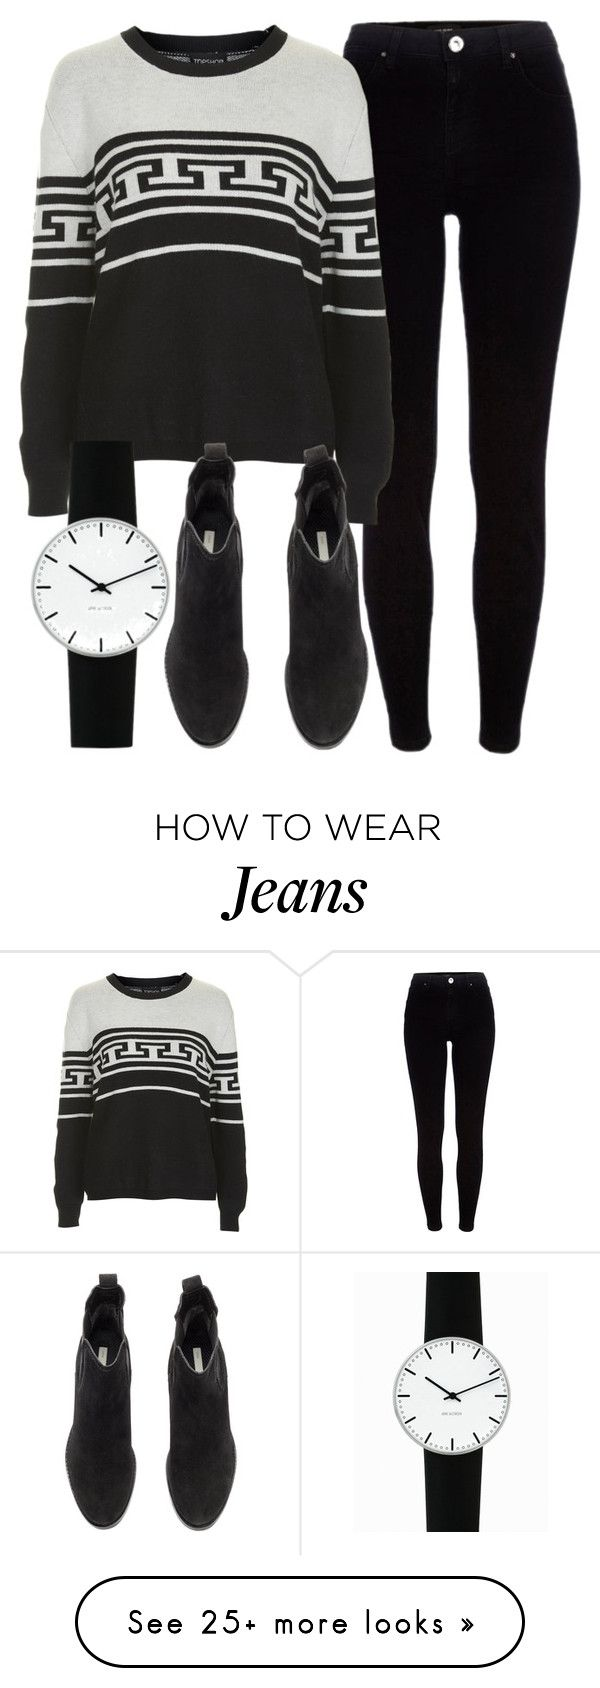 """Untitled #4690"" by laurenmboot on Polyvore featuring River Island, Topshop, H&M and Rosendahl"